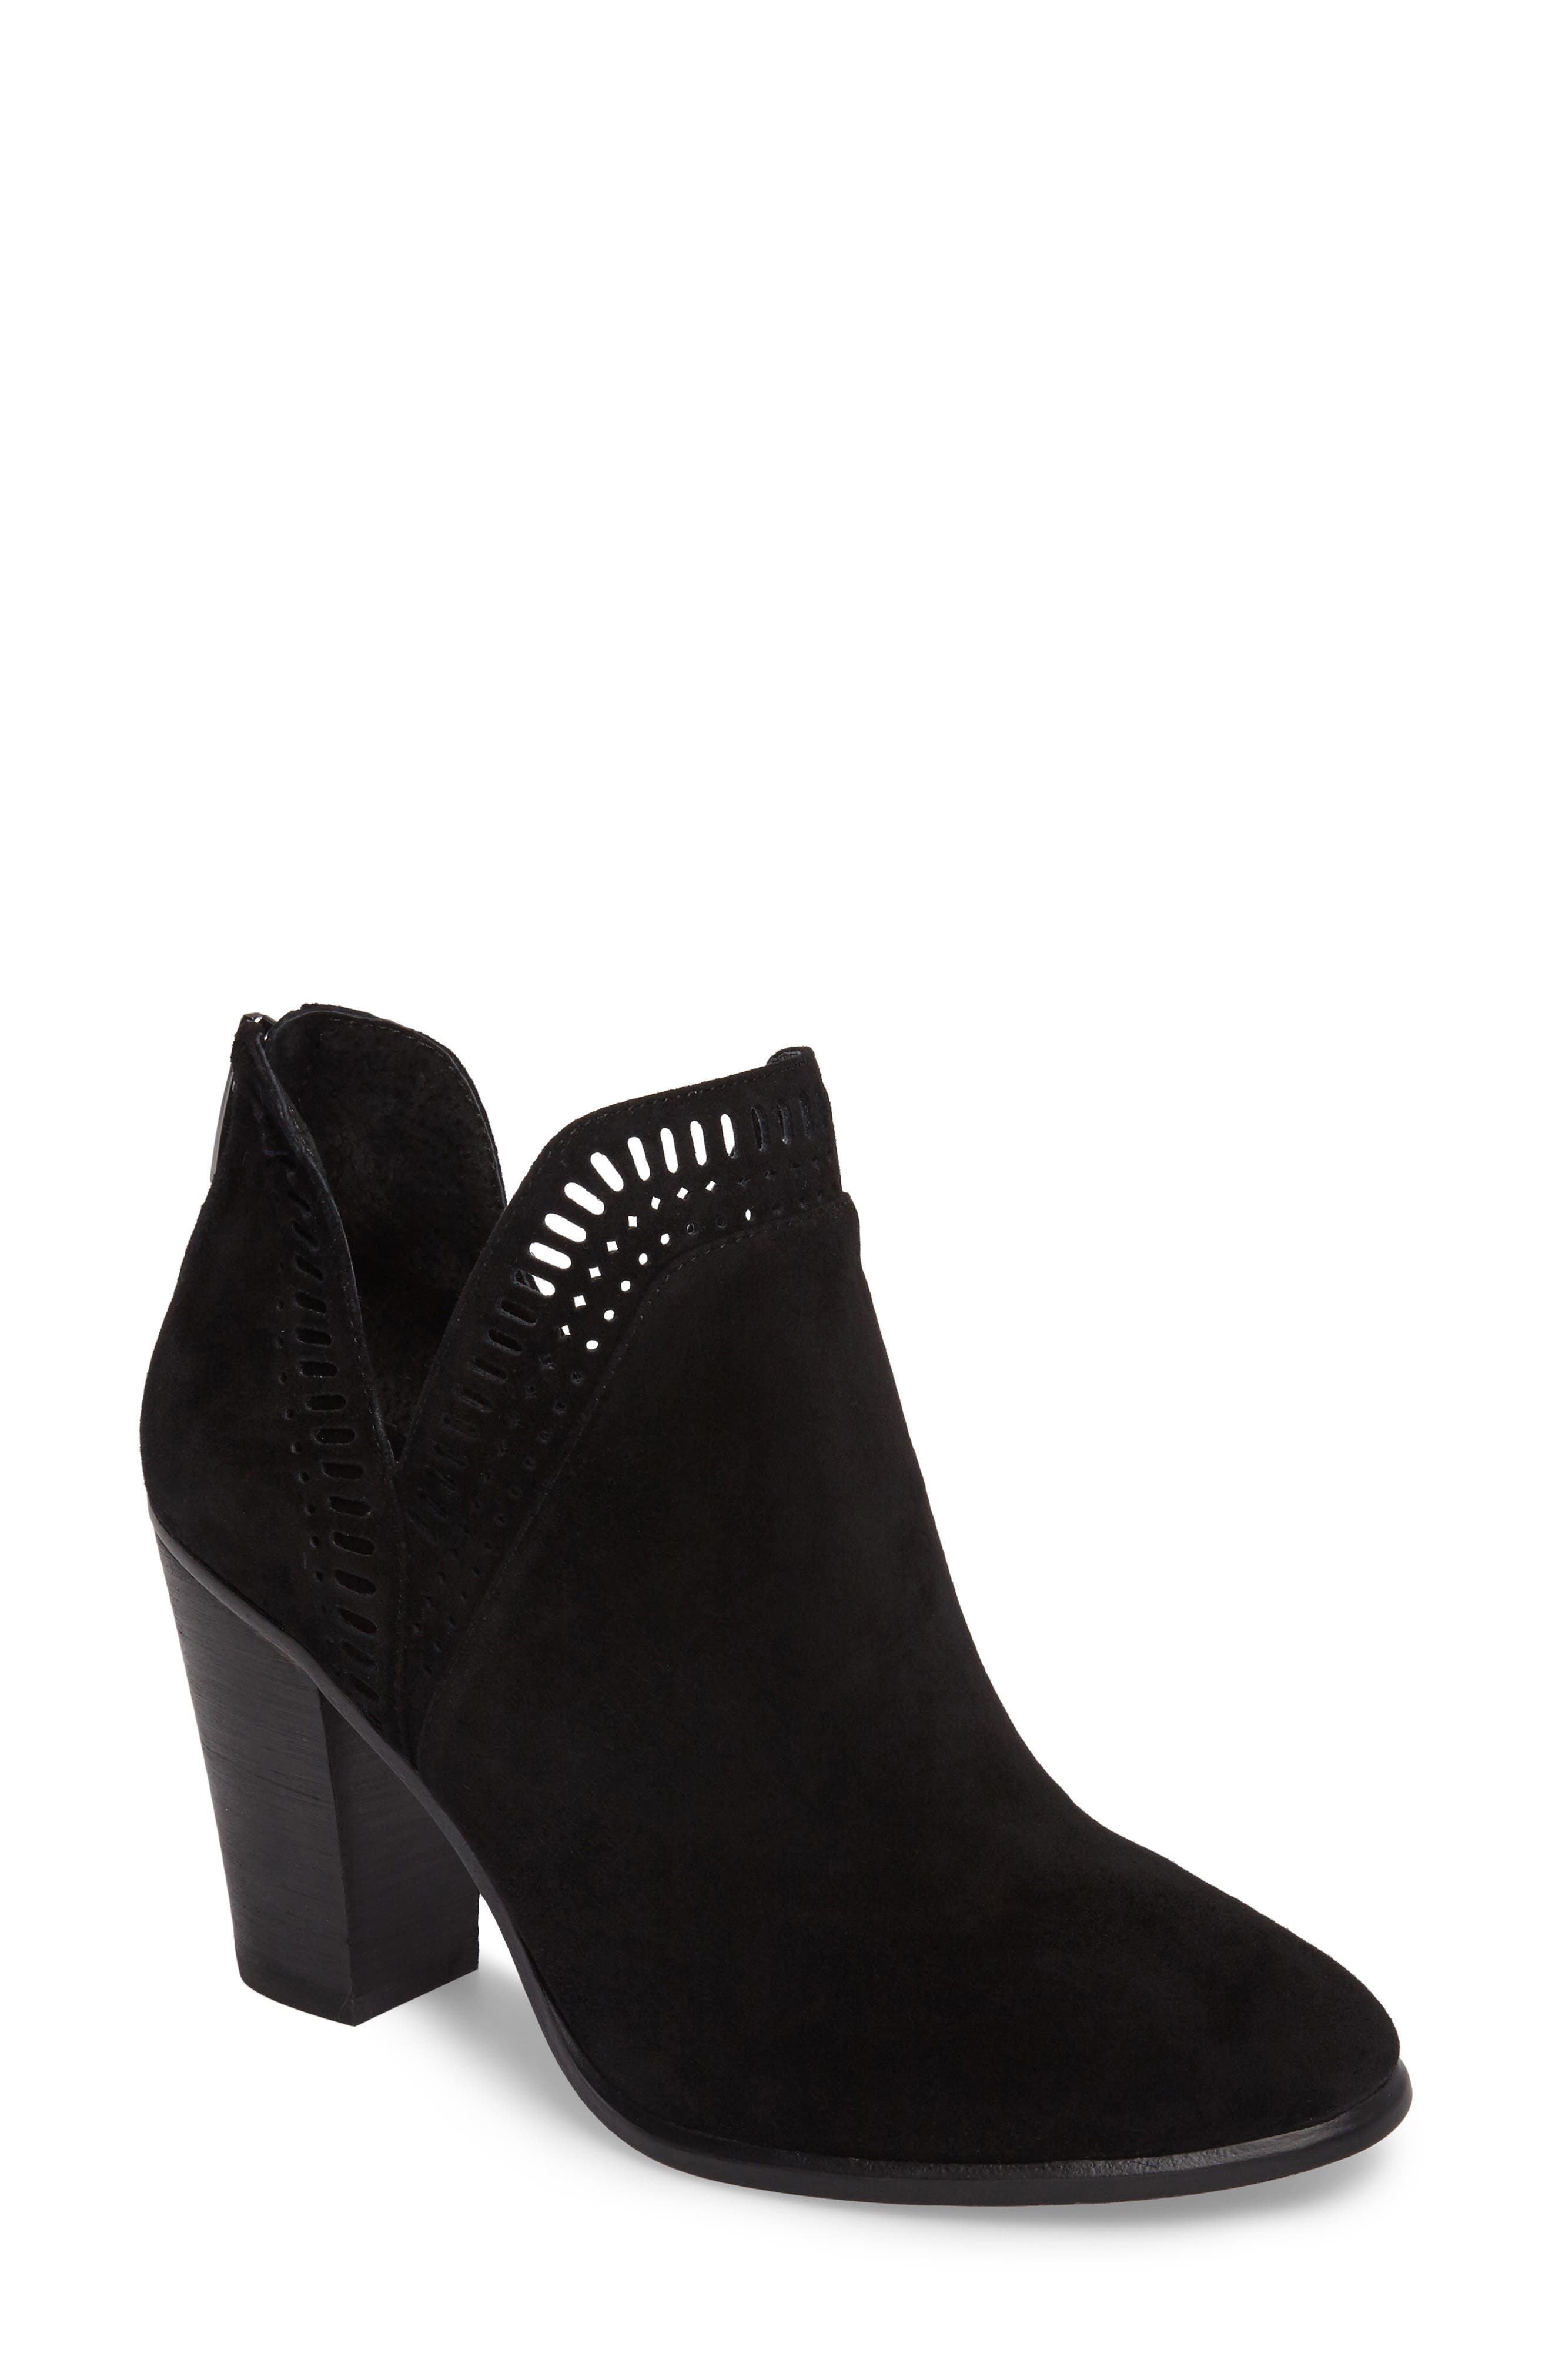 VINCE CAMUTO Fileana Split Shaft Bootie, Main, color, 001